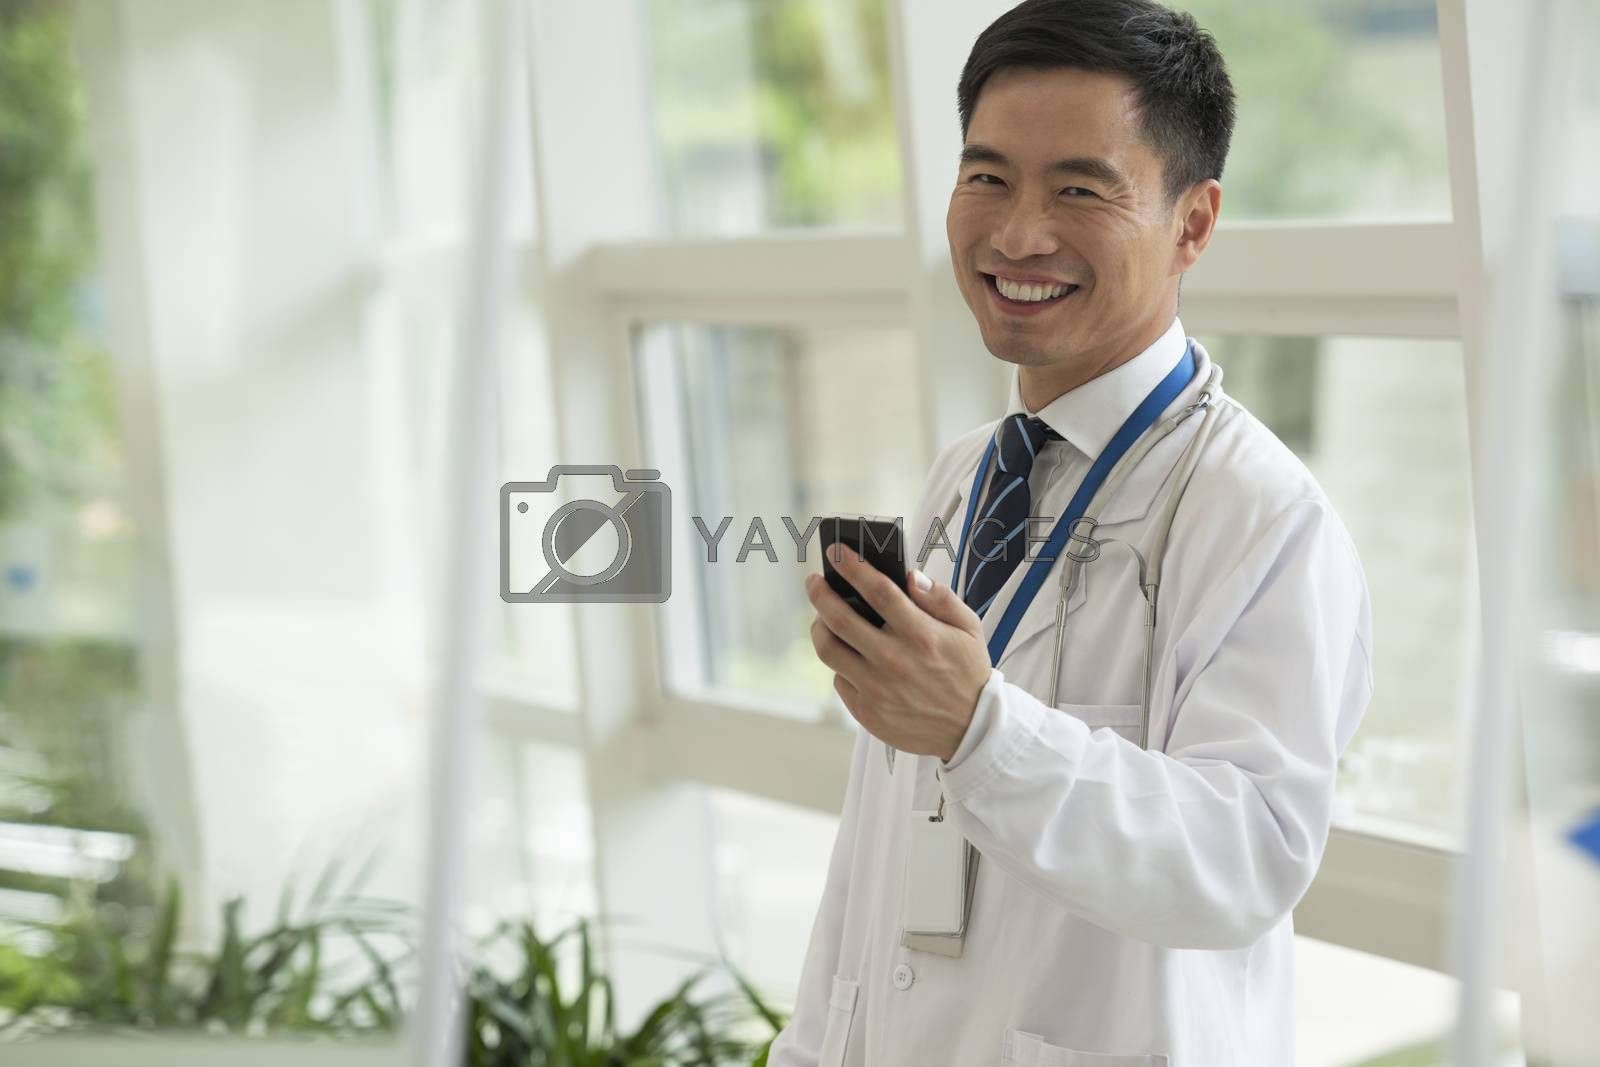 Smiling doctor using his phone in the hospital lobby, looking at camera, glass doors